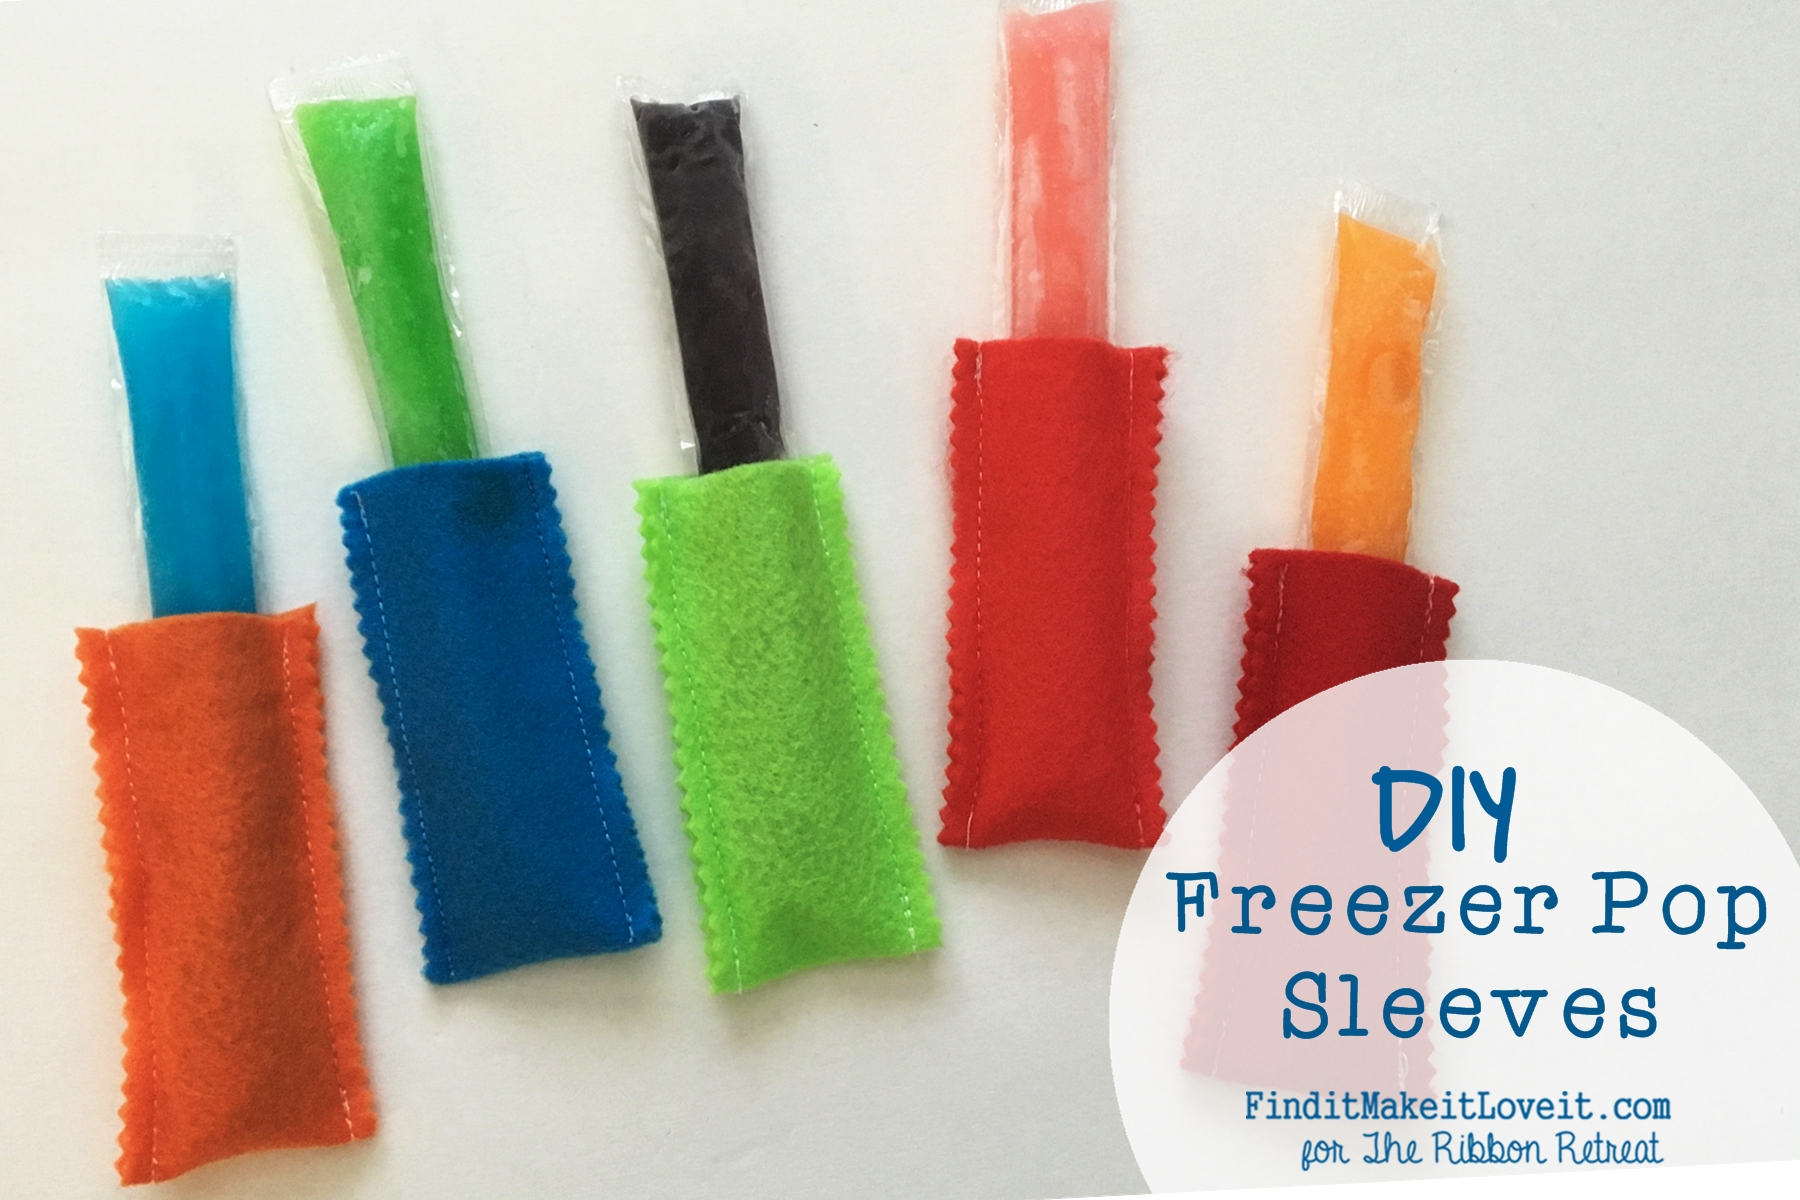 DIY Freezer Pop Sleeves (3)